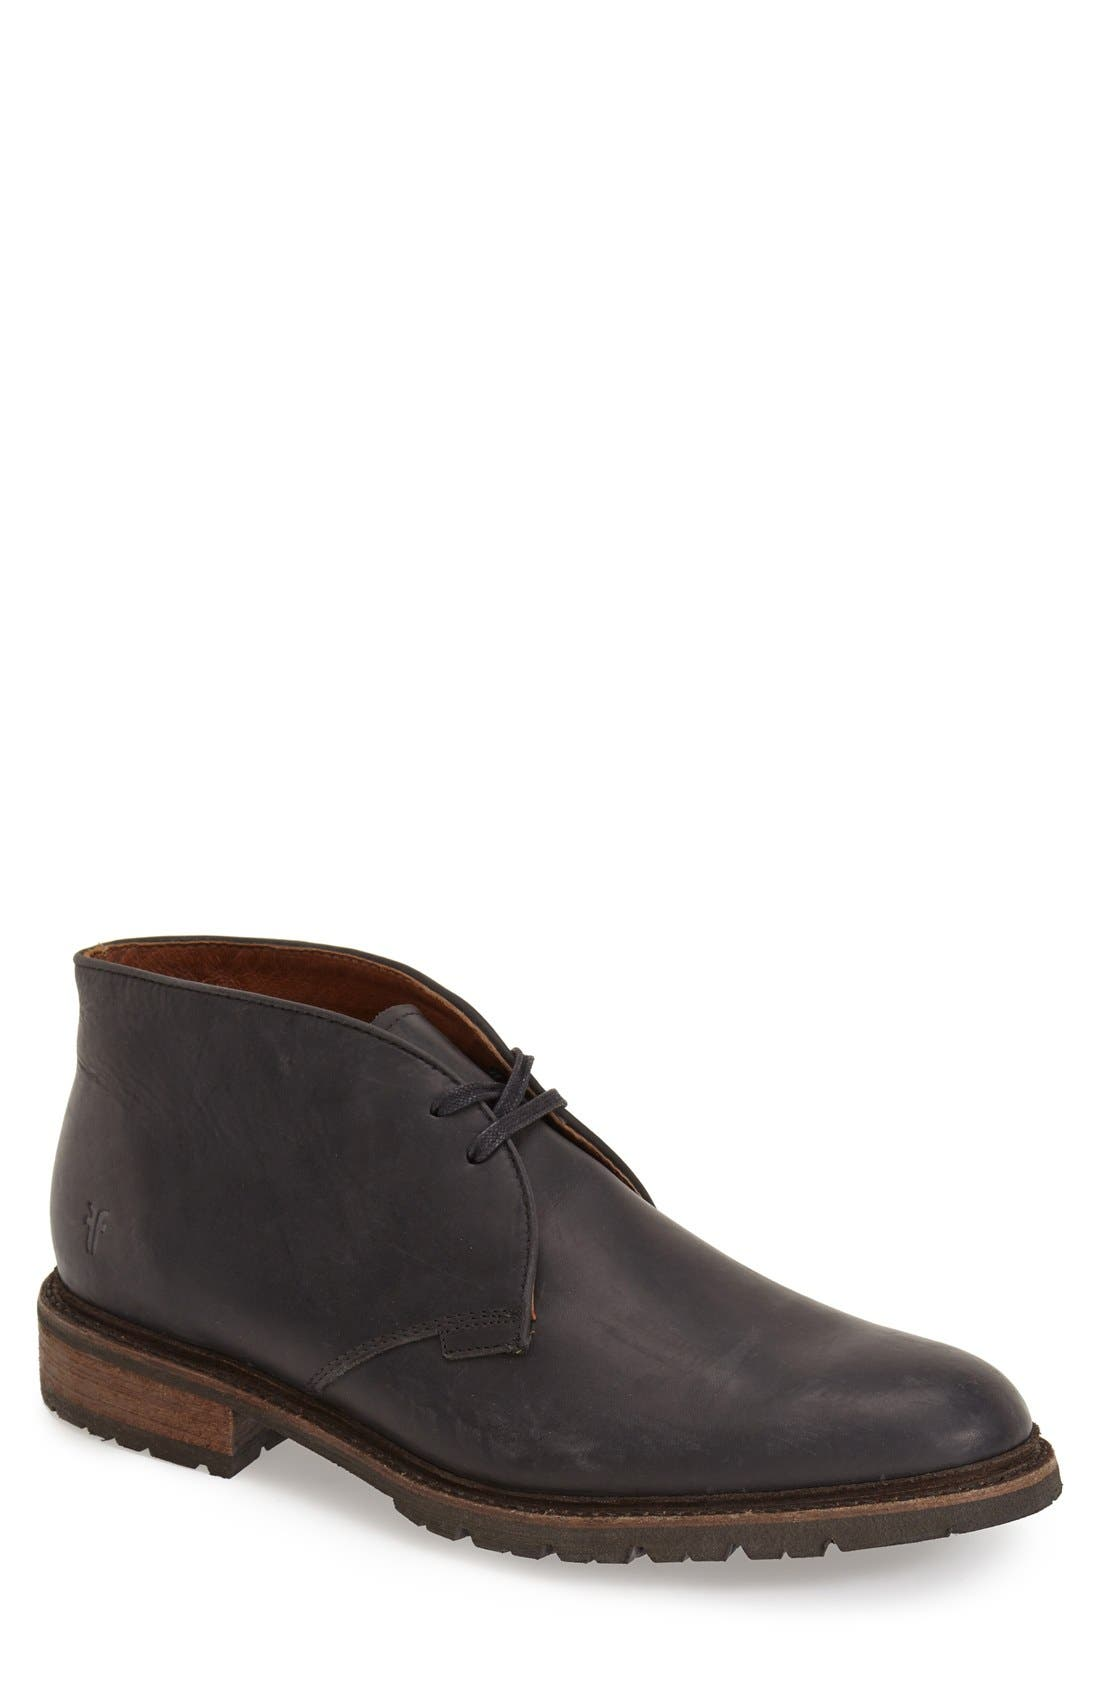 Alternate Image 1 Selected - Frye 'James' Lug Sole Chukka Boot (Men)